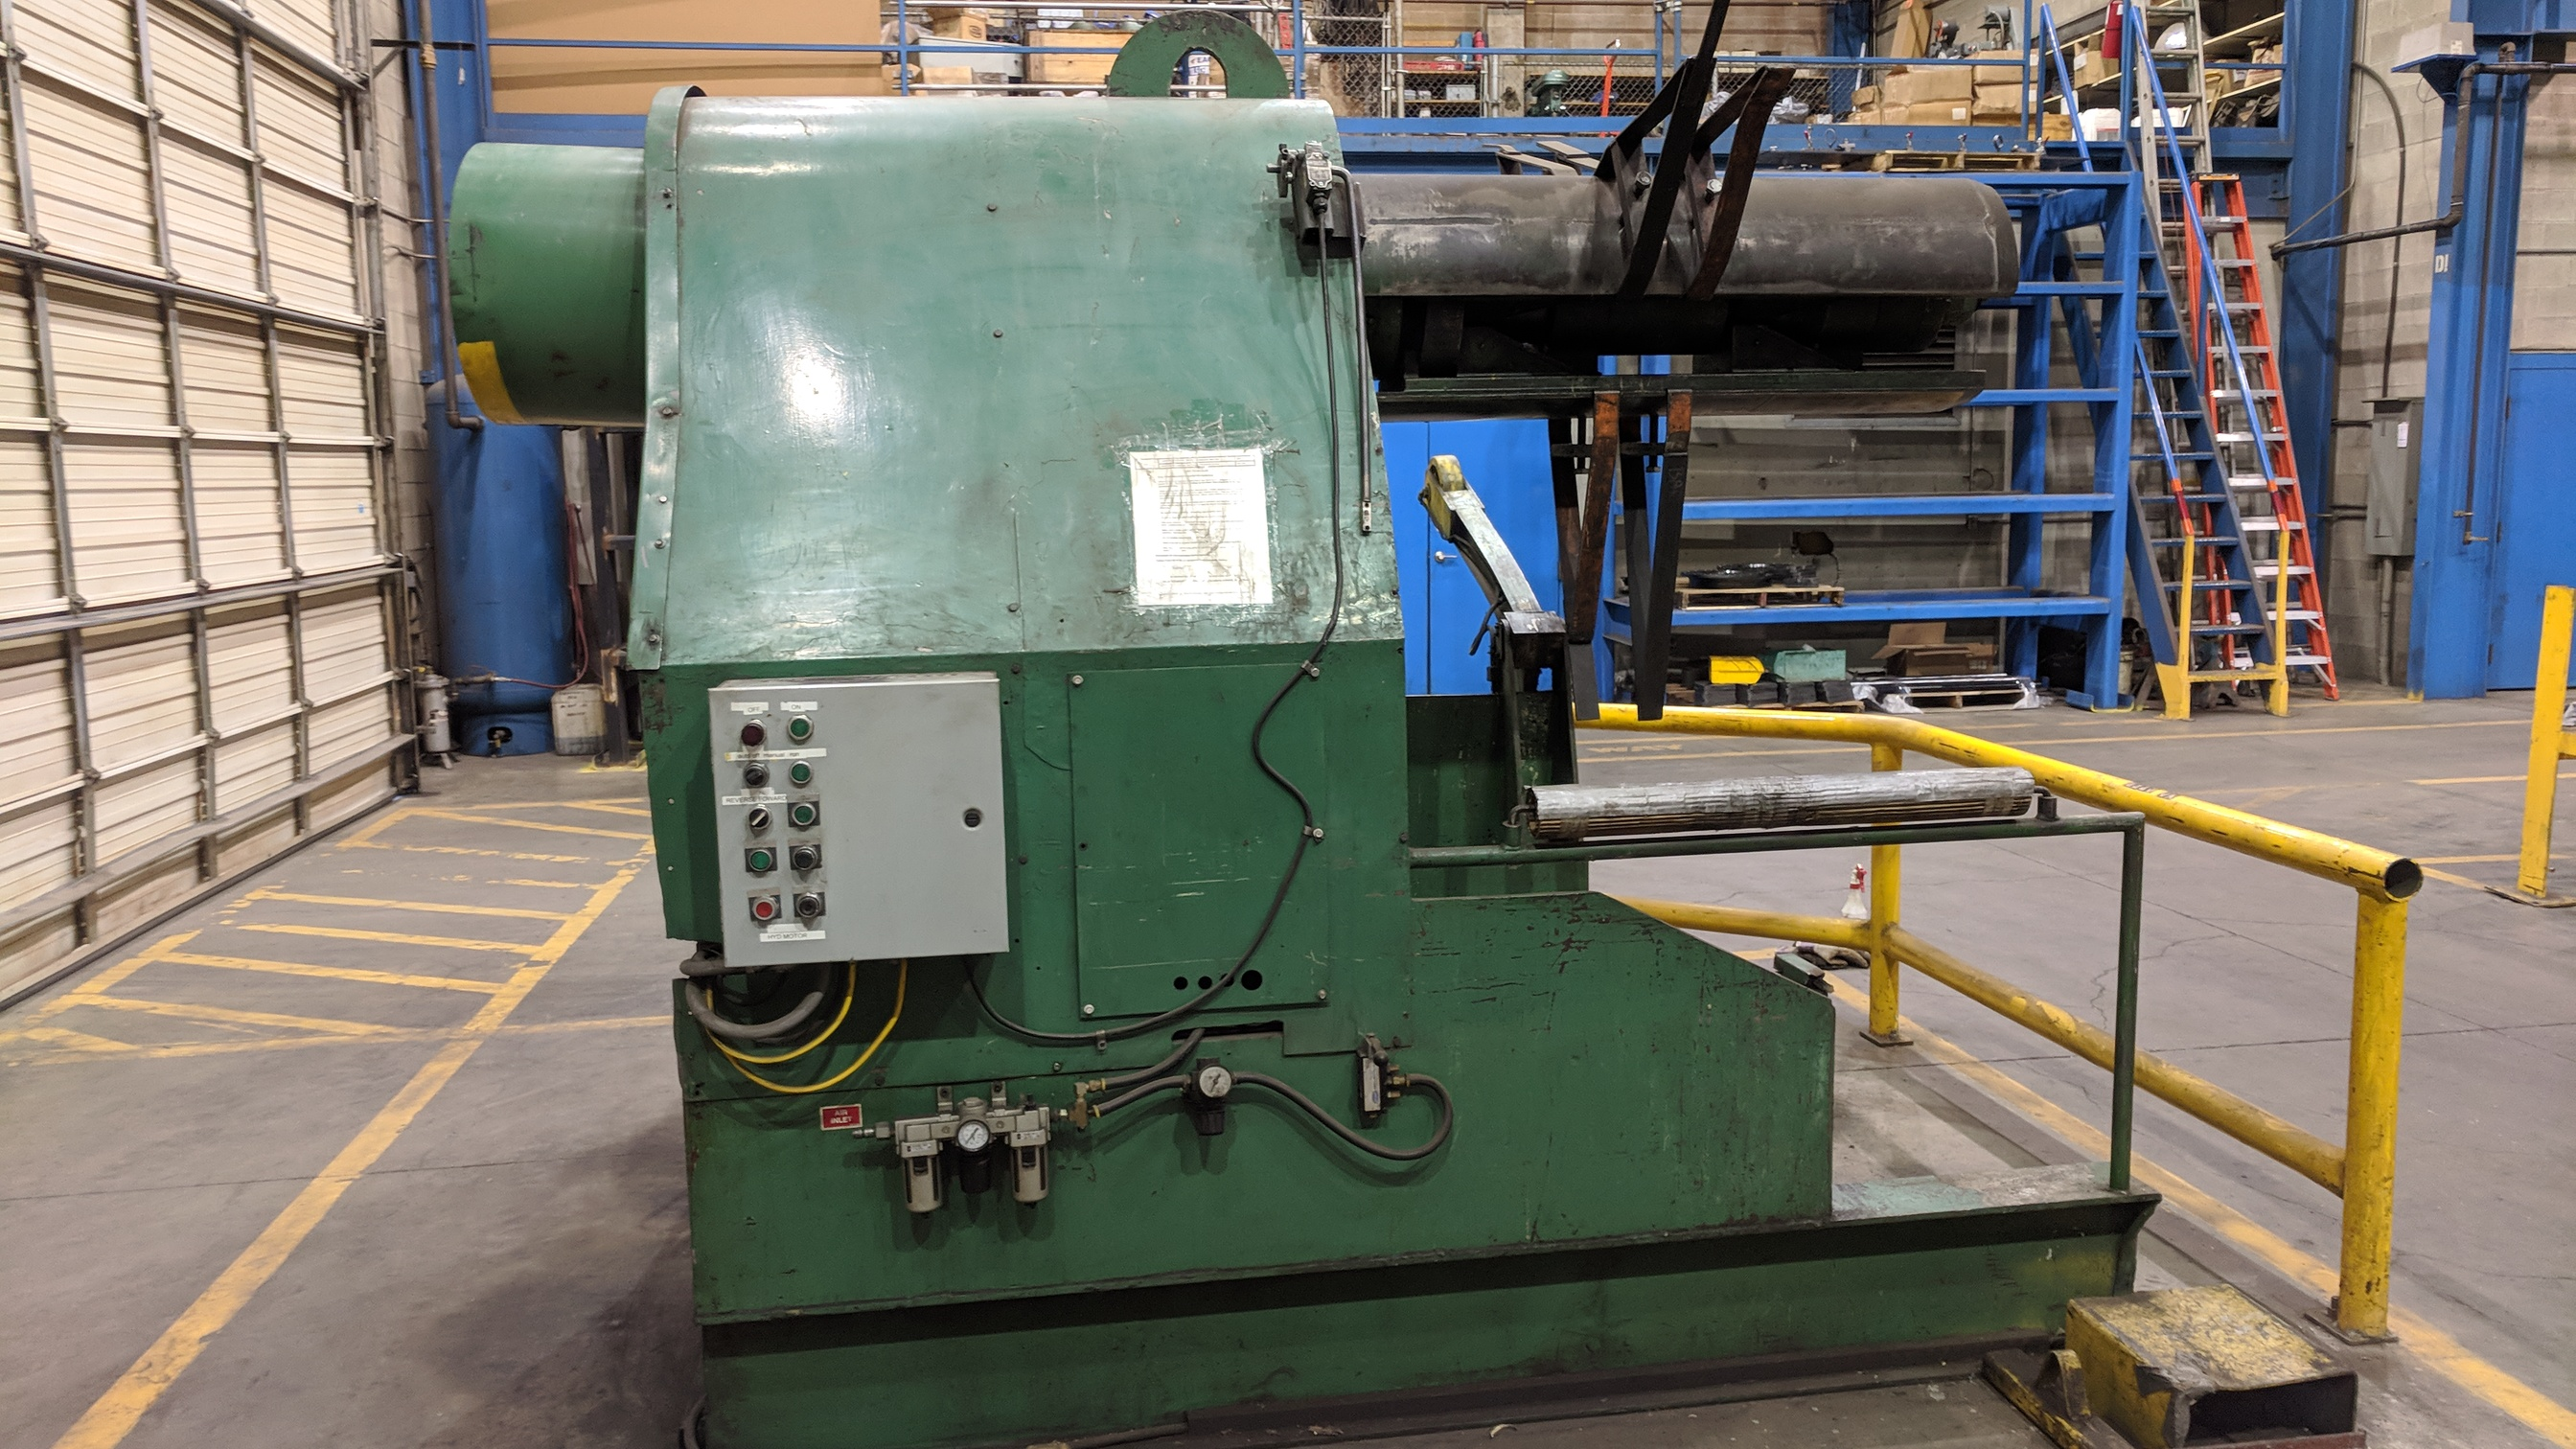 """PRESS LINE PL 1000 48"""" HYDRAULIC POWER UNCOILER, S/N 5608-3/77 (CI) - Image 5 of 6"""